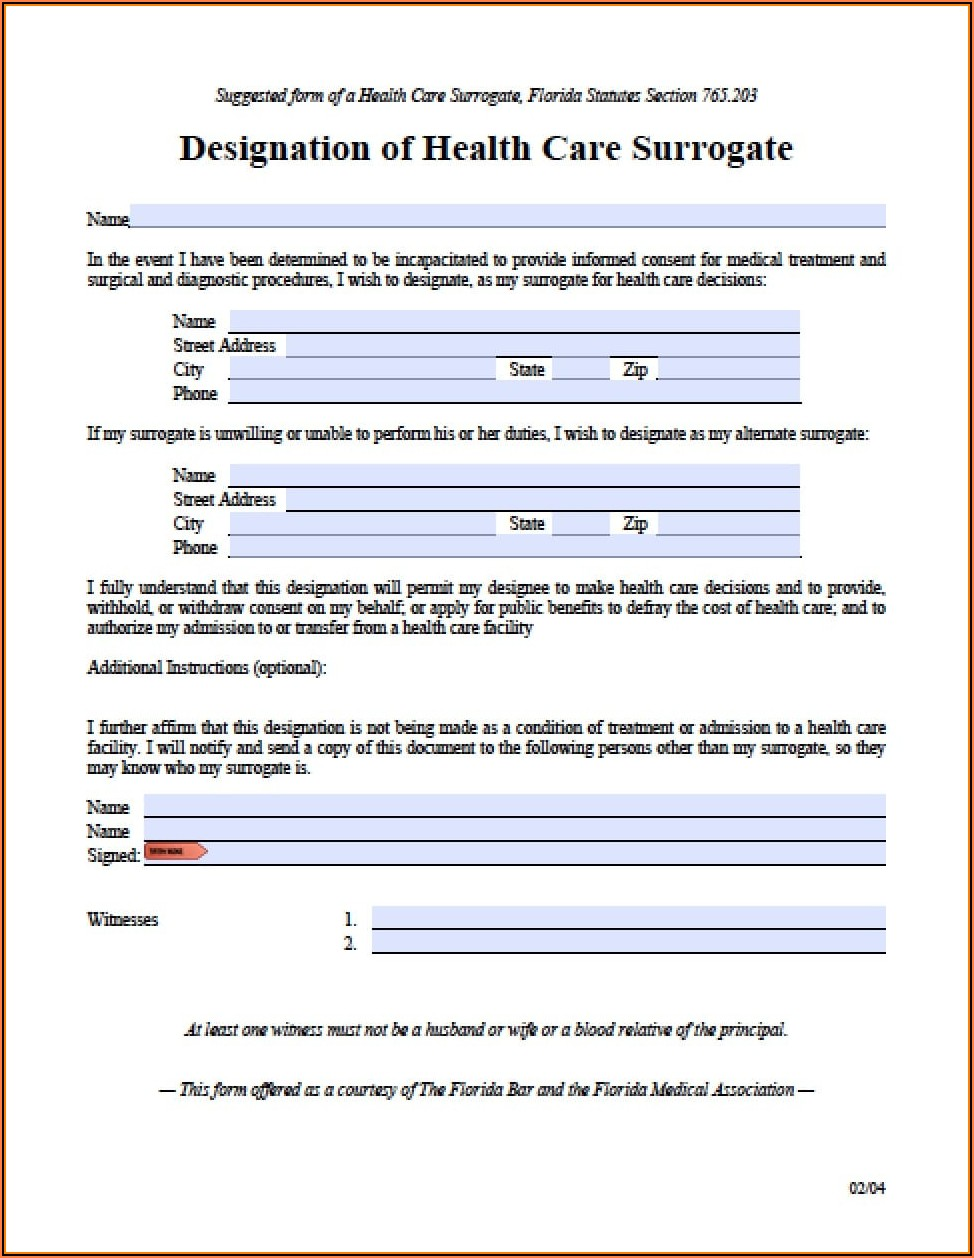 Durable Healthcare Power Of Attorney Form Florida